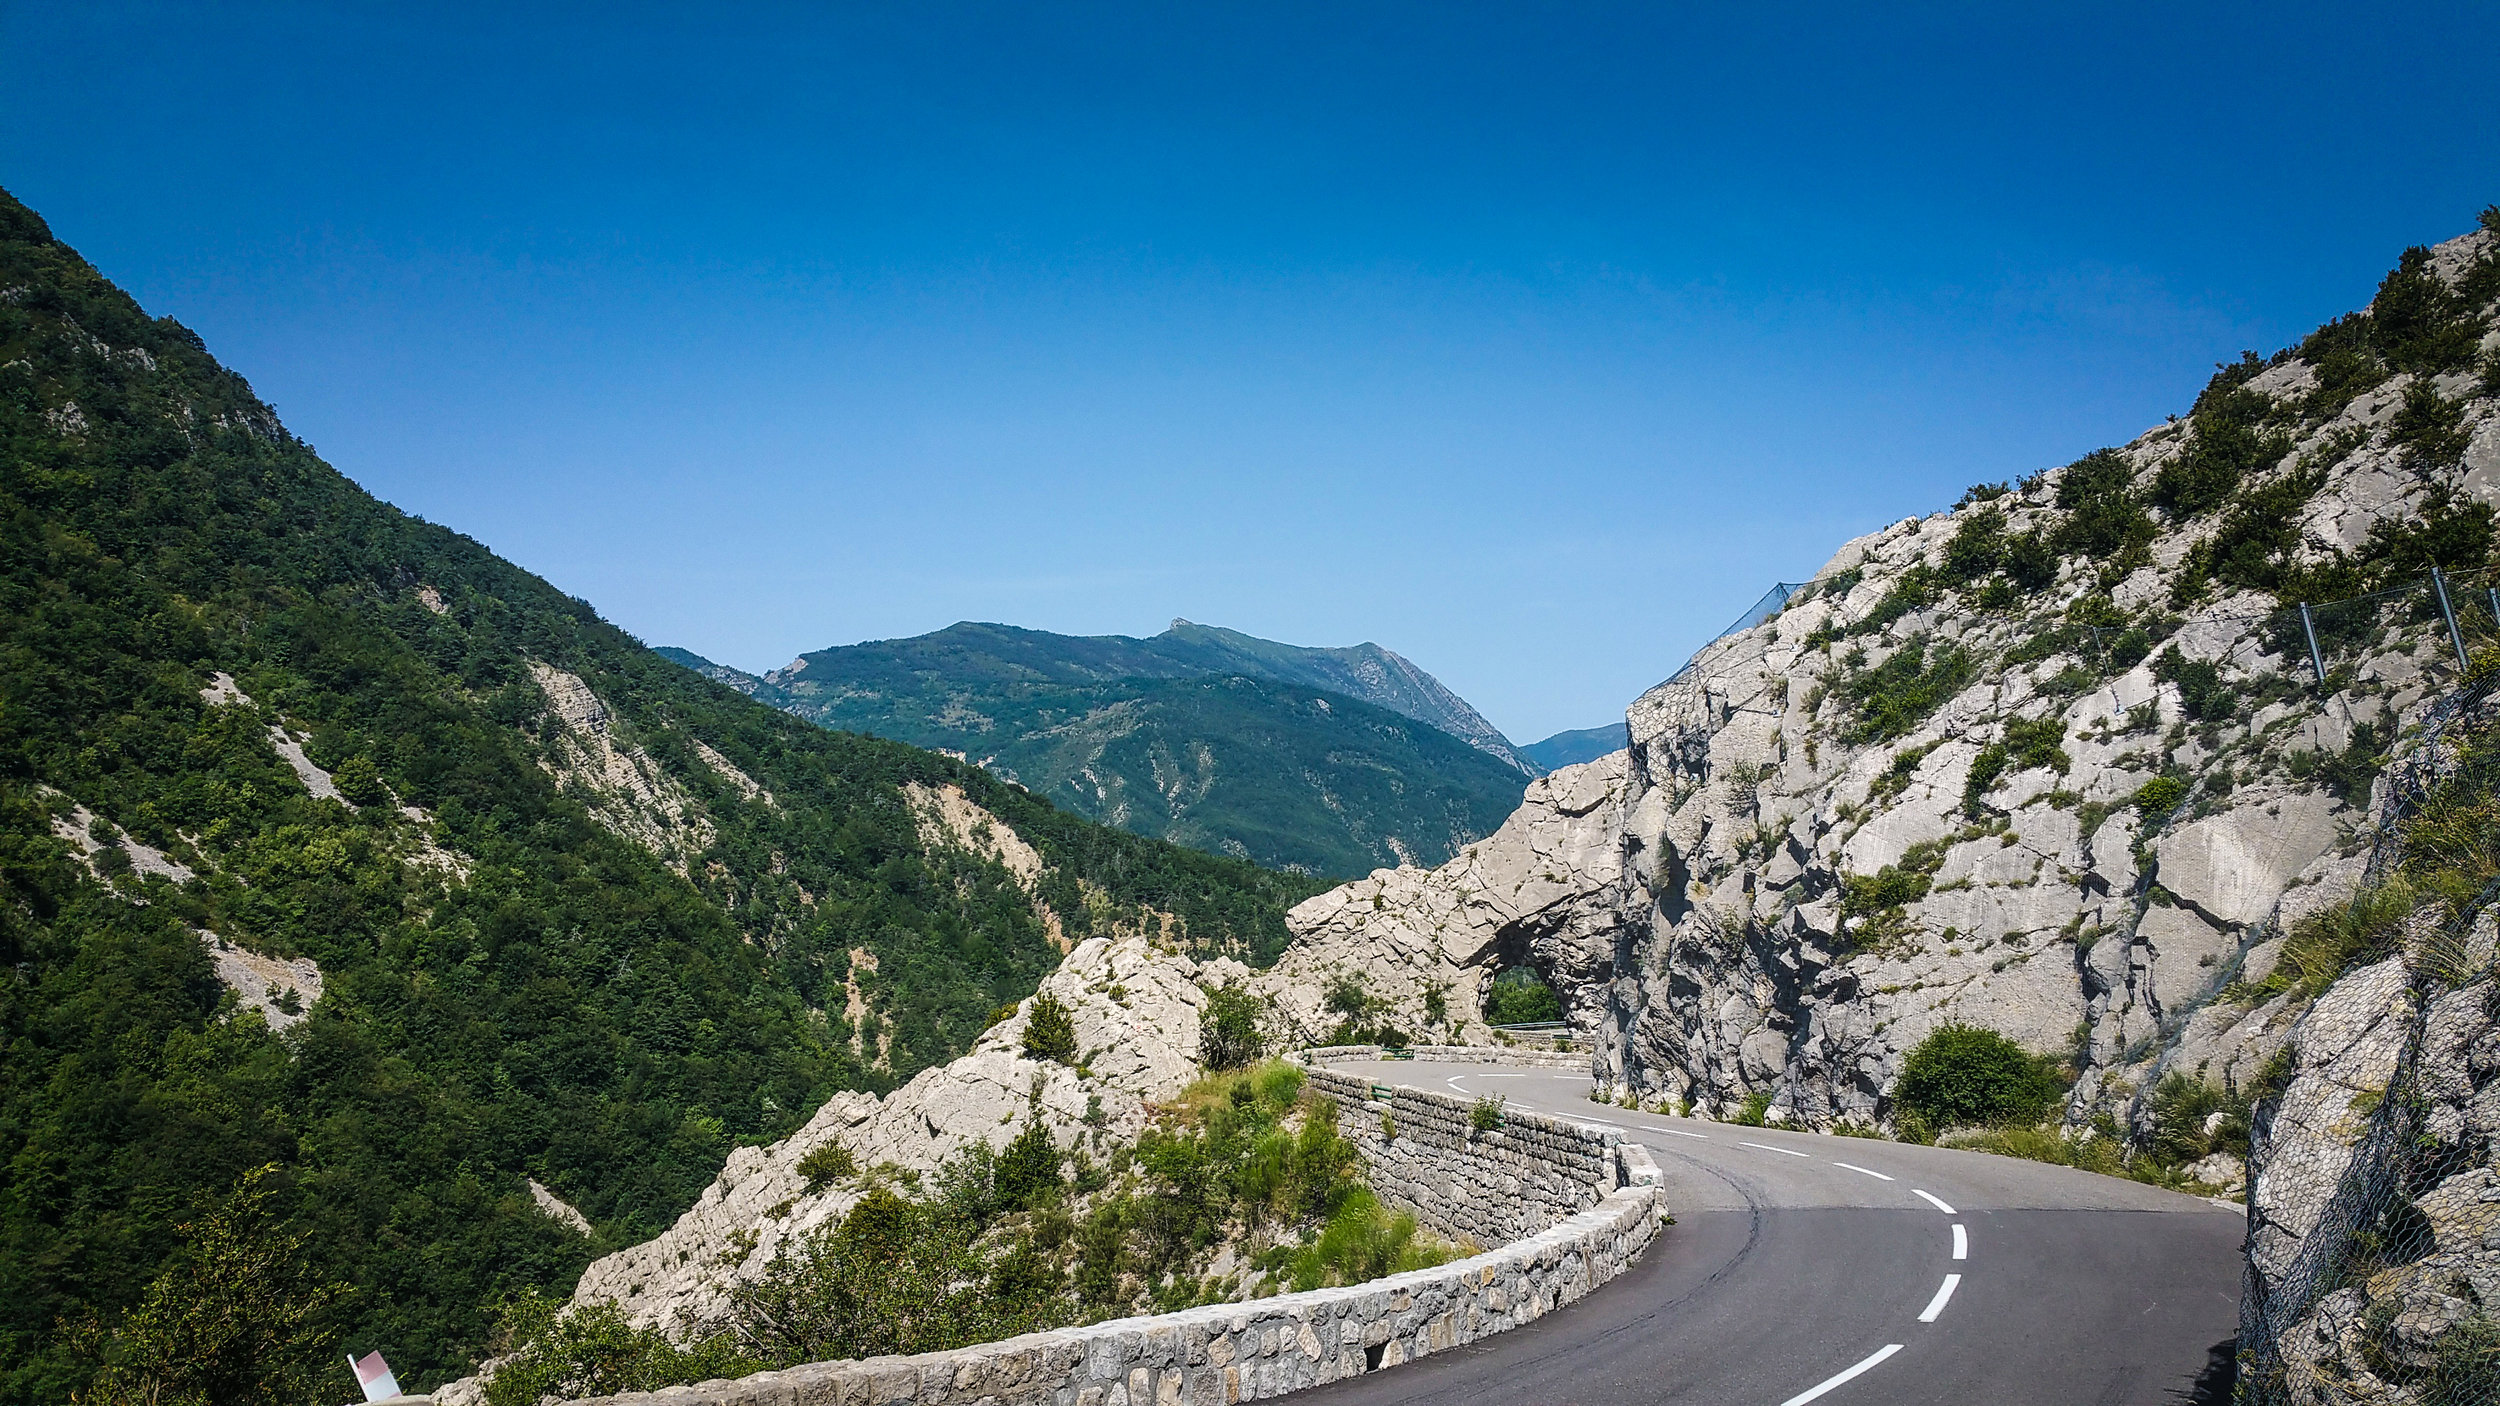 Route Napoleon, just inland from the beautiful Côte d'Azur. Picture: Ben Lindley